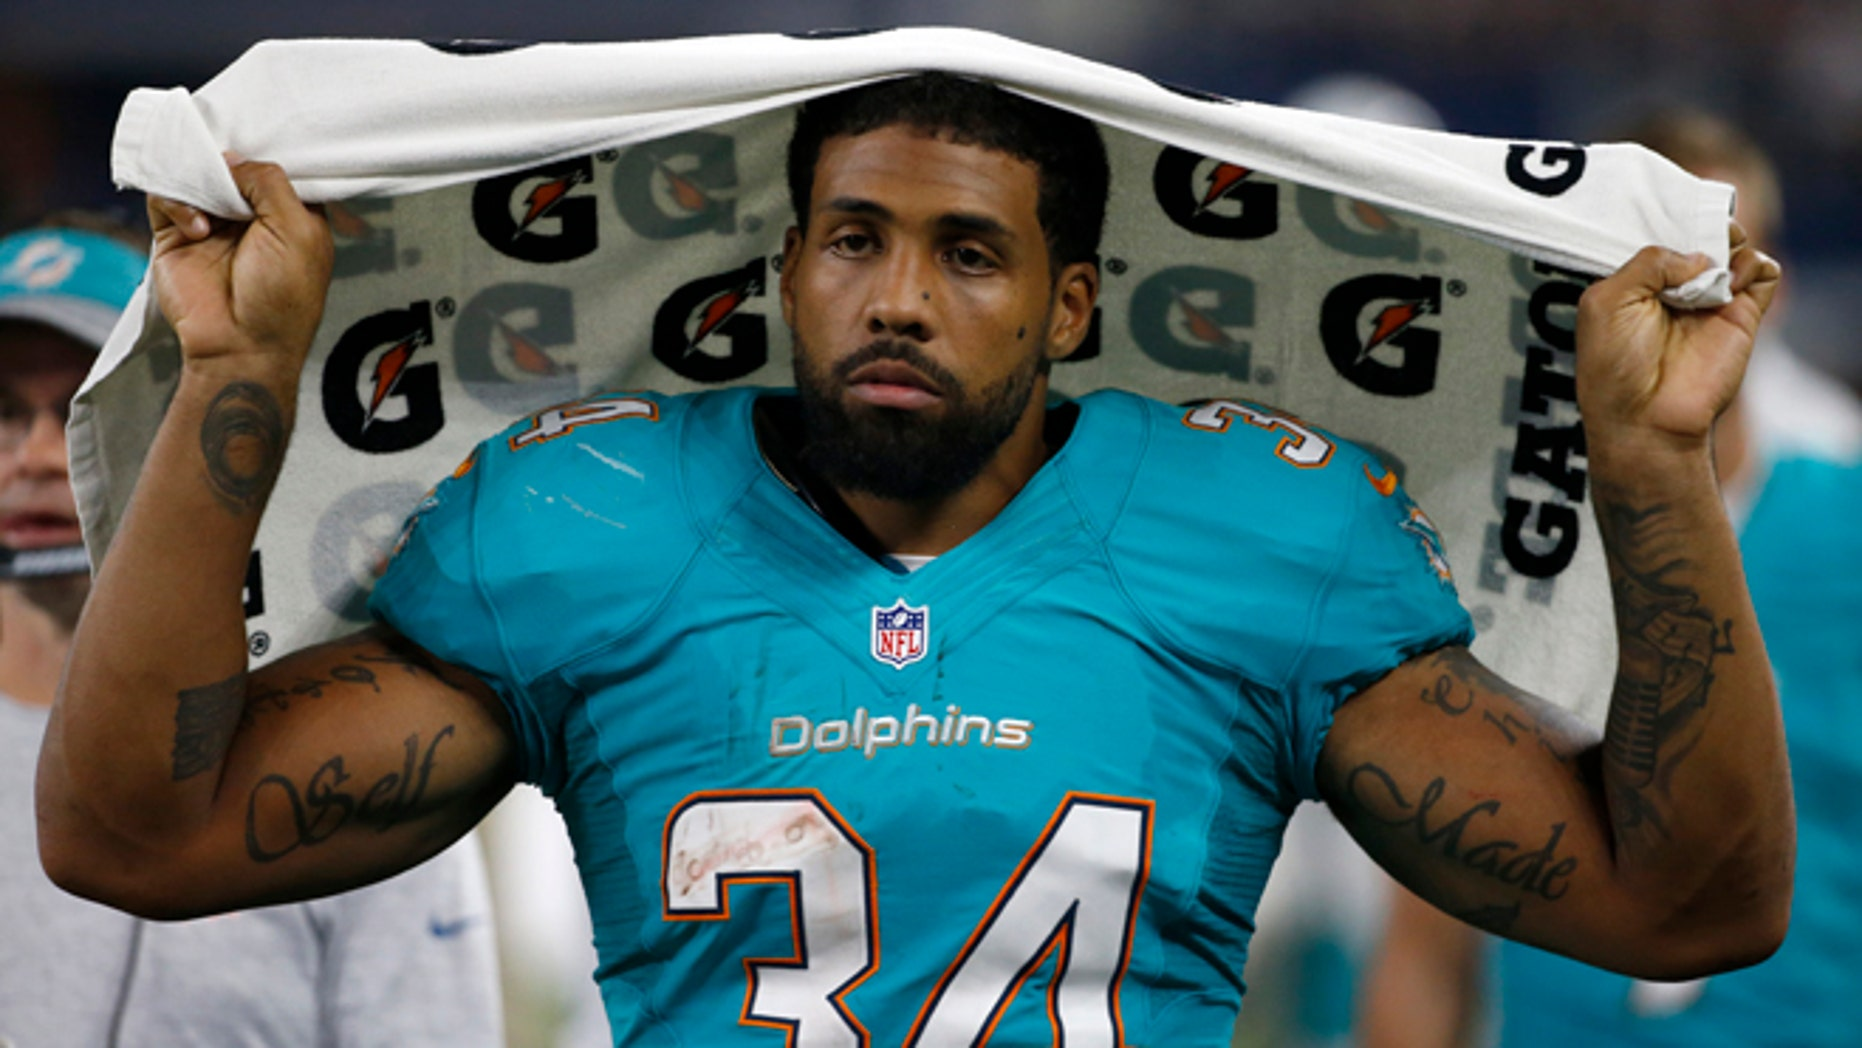 This Aug. 19, 2016 photo shows Miami Dolphins running back Arian Foster (34) walking along the sideline during an NFL preseason football game in Arlington, Texas. Four-time Pro Bowl running back Arian Foster has announced, Monday, Oct. 24, 2016, his retirement midway through an injury-plagued season with the Miami Dolphins. (AP Photo/Michael Ainsworth)